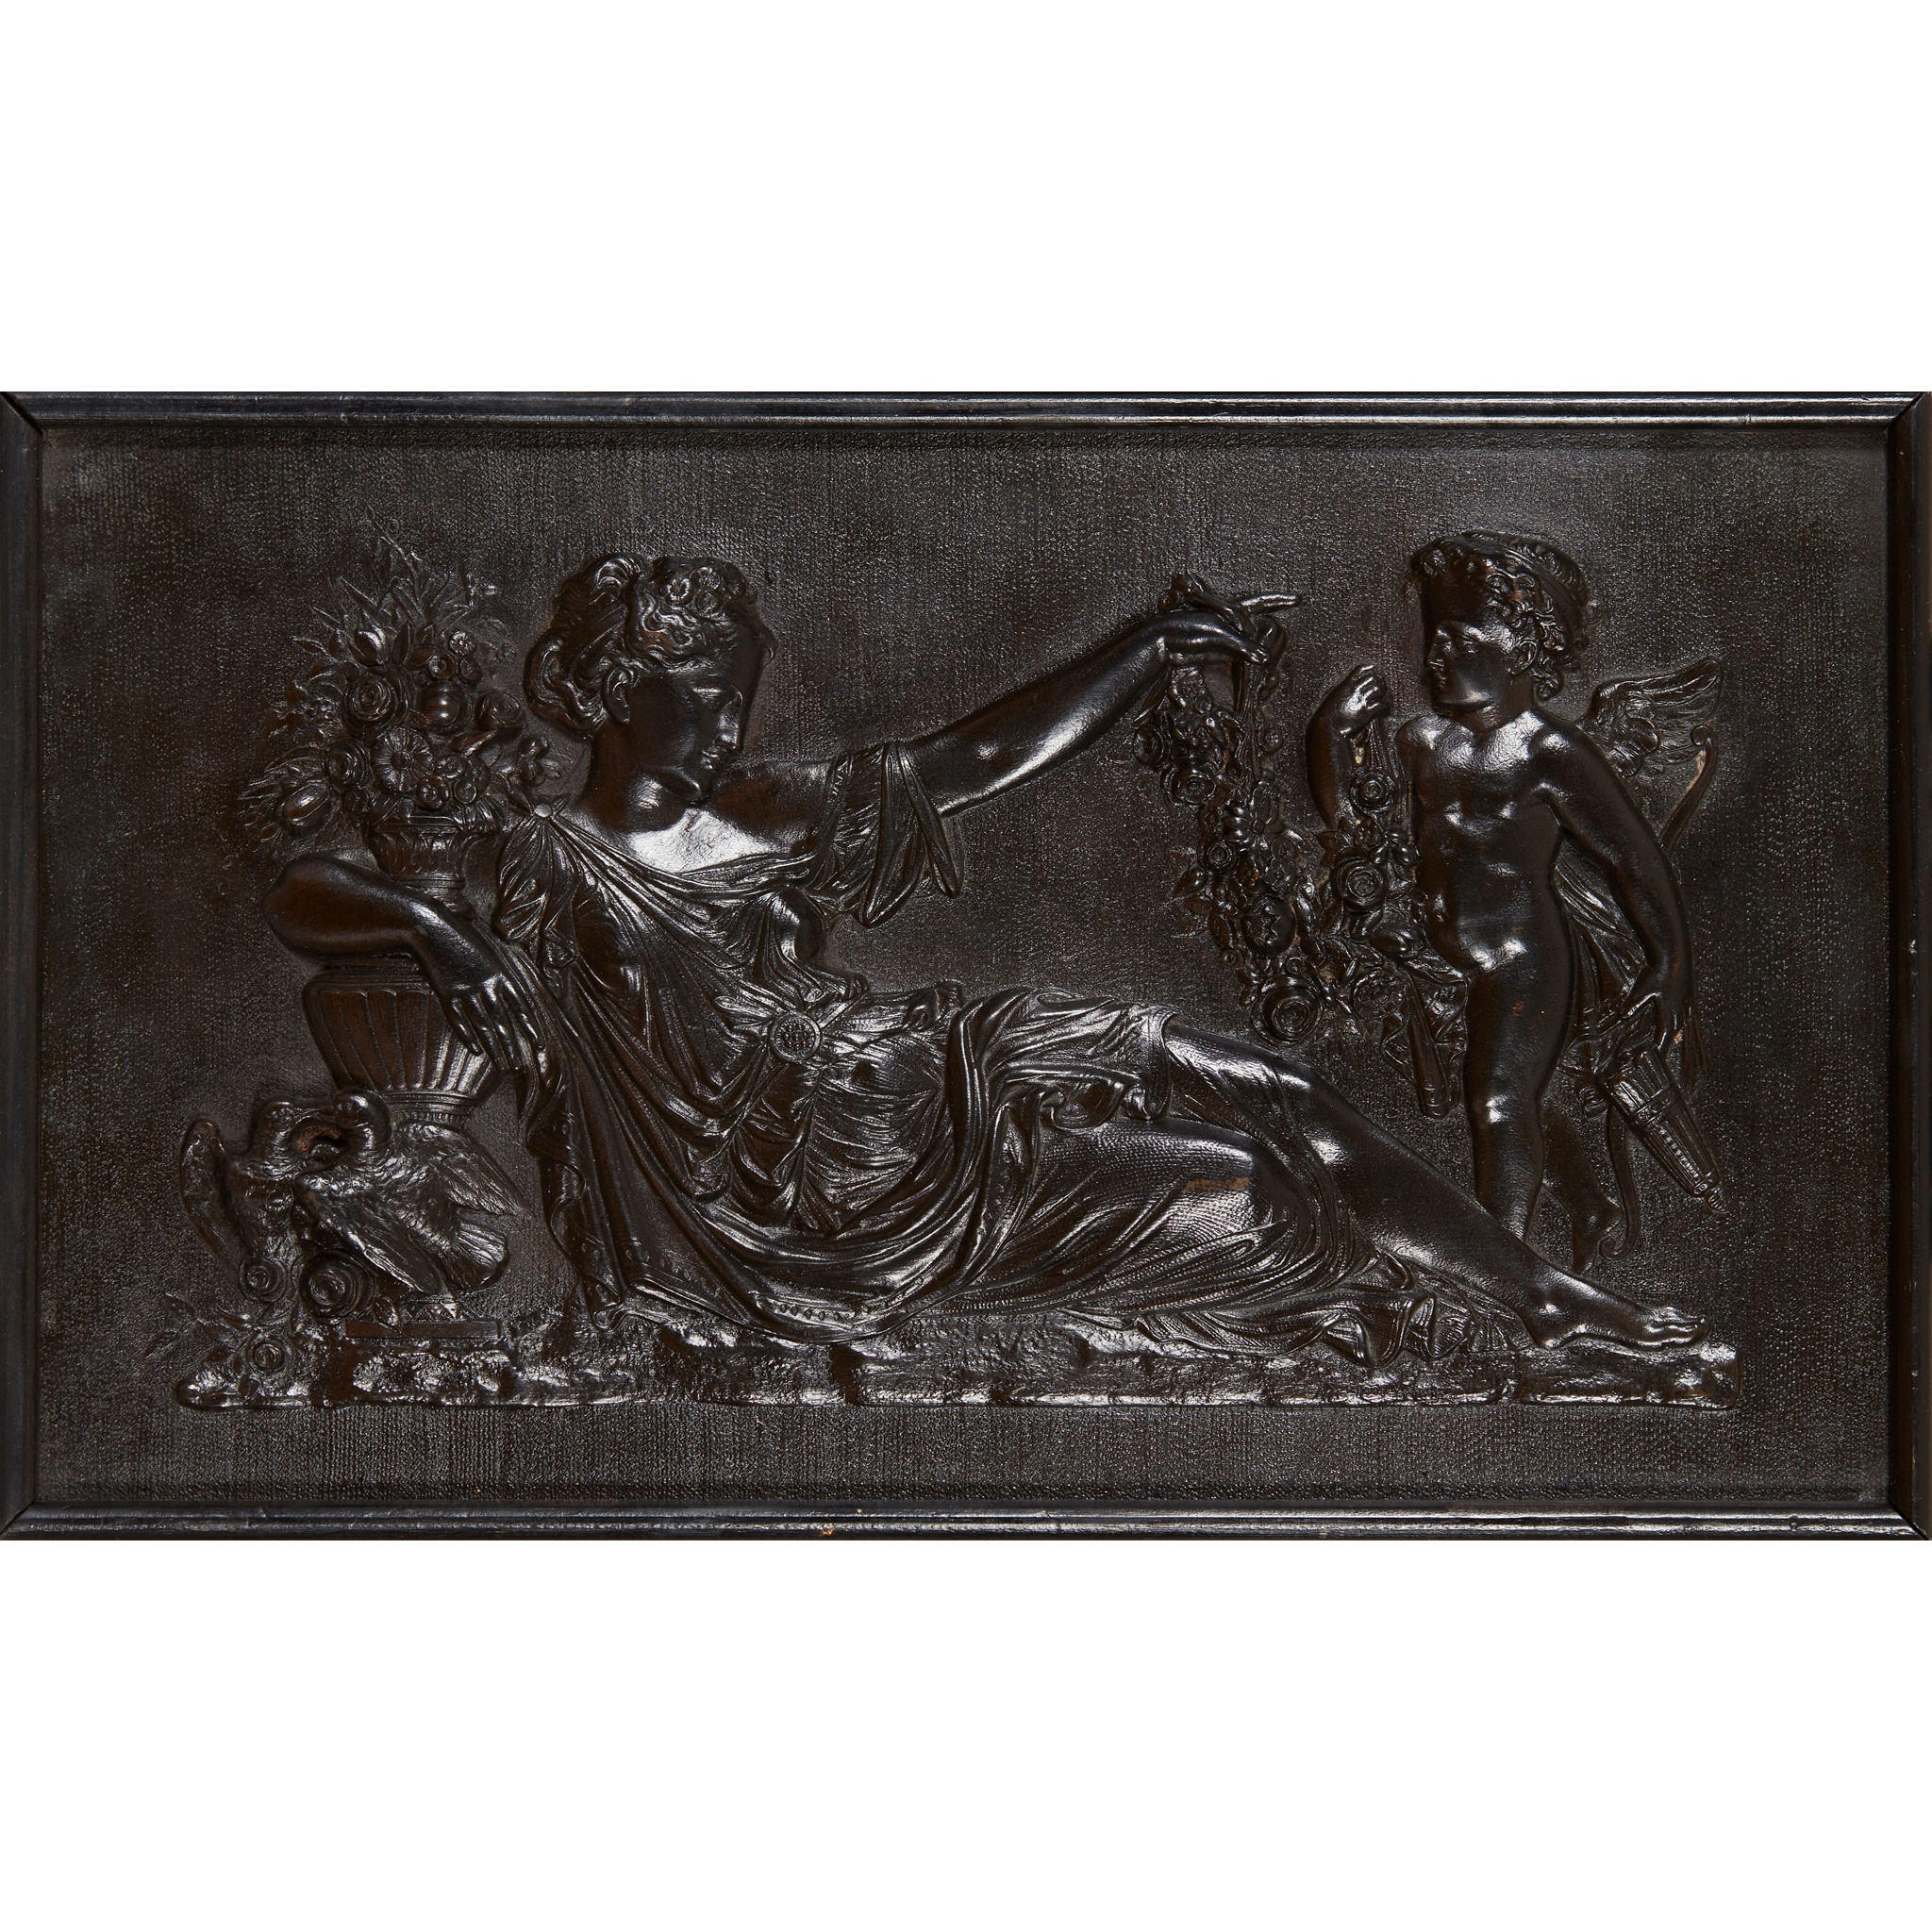 PAIR OF CLASSICAL BRONZE RELIEF PLAQUES LATE 19TH/ EARLY 20TH CENTURY